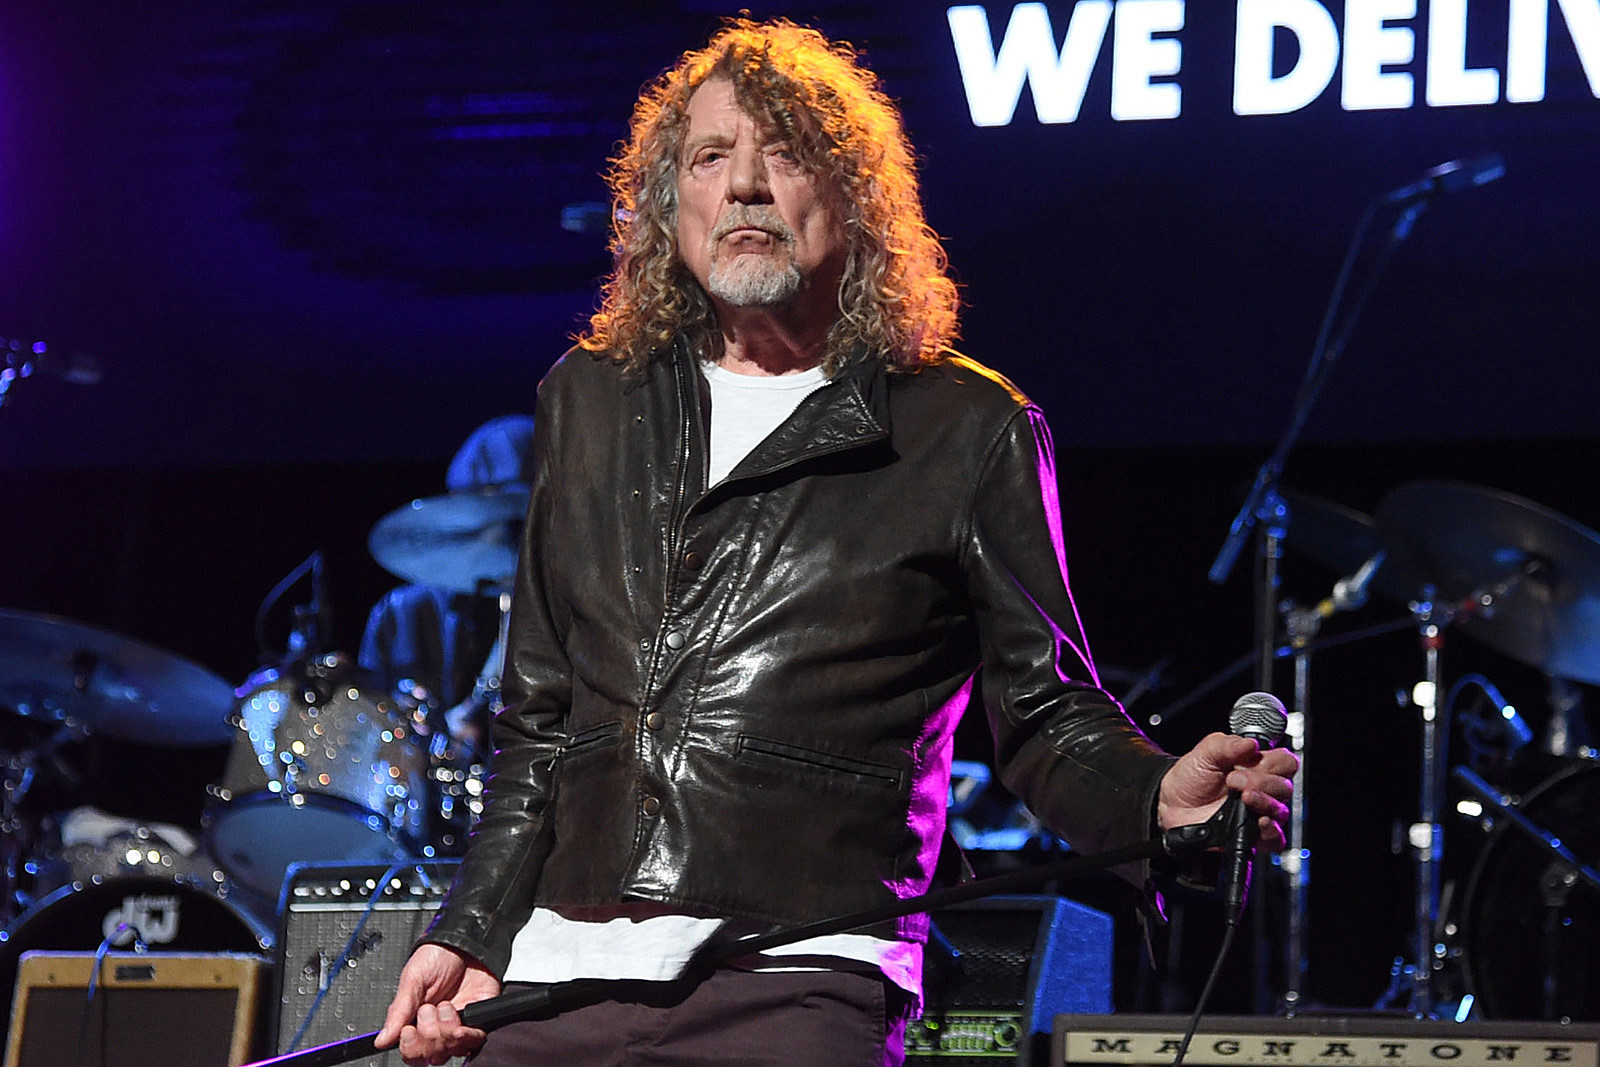 A History of 'Next Led Zeppelin' Bands